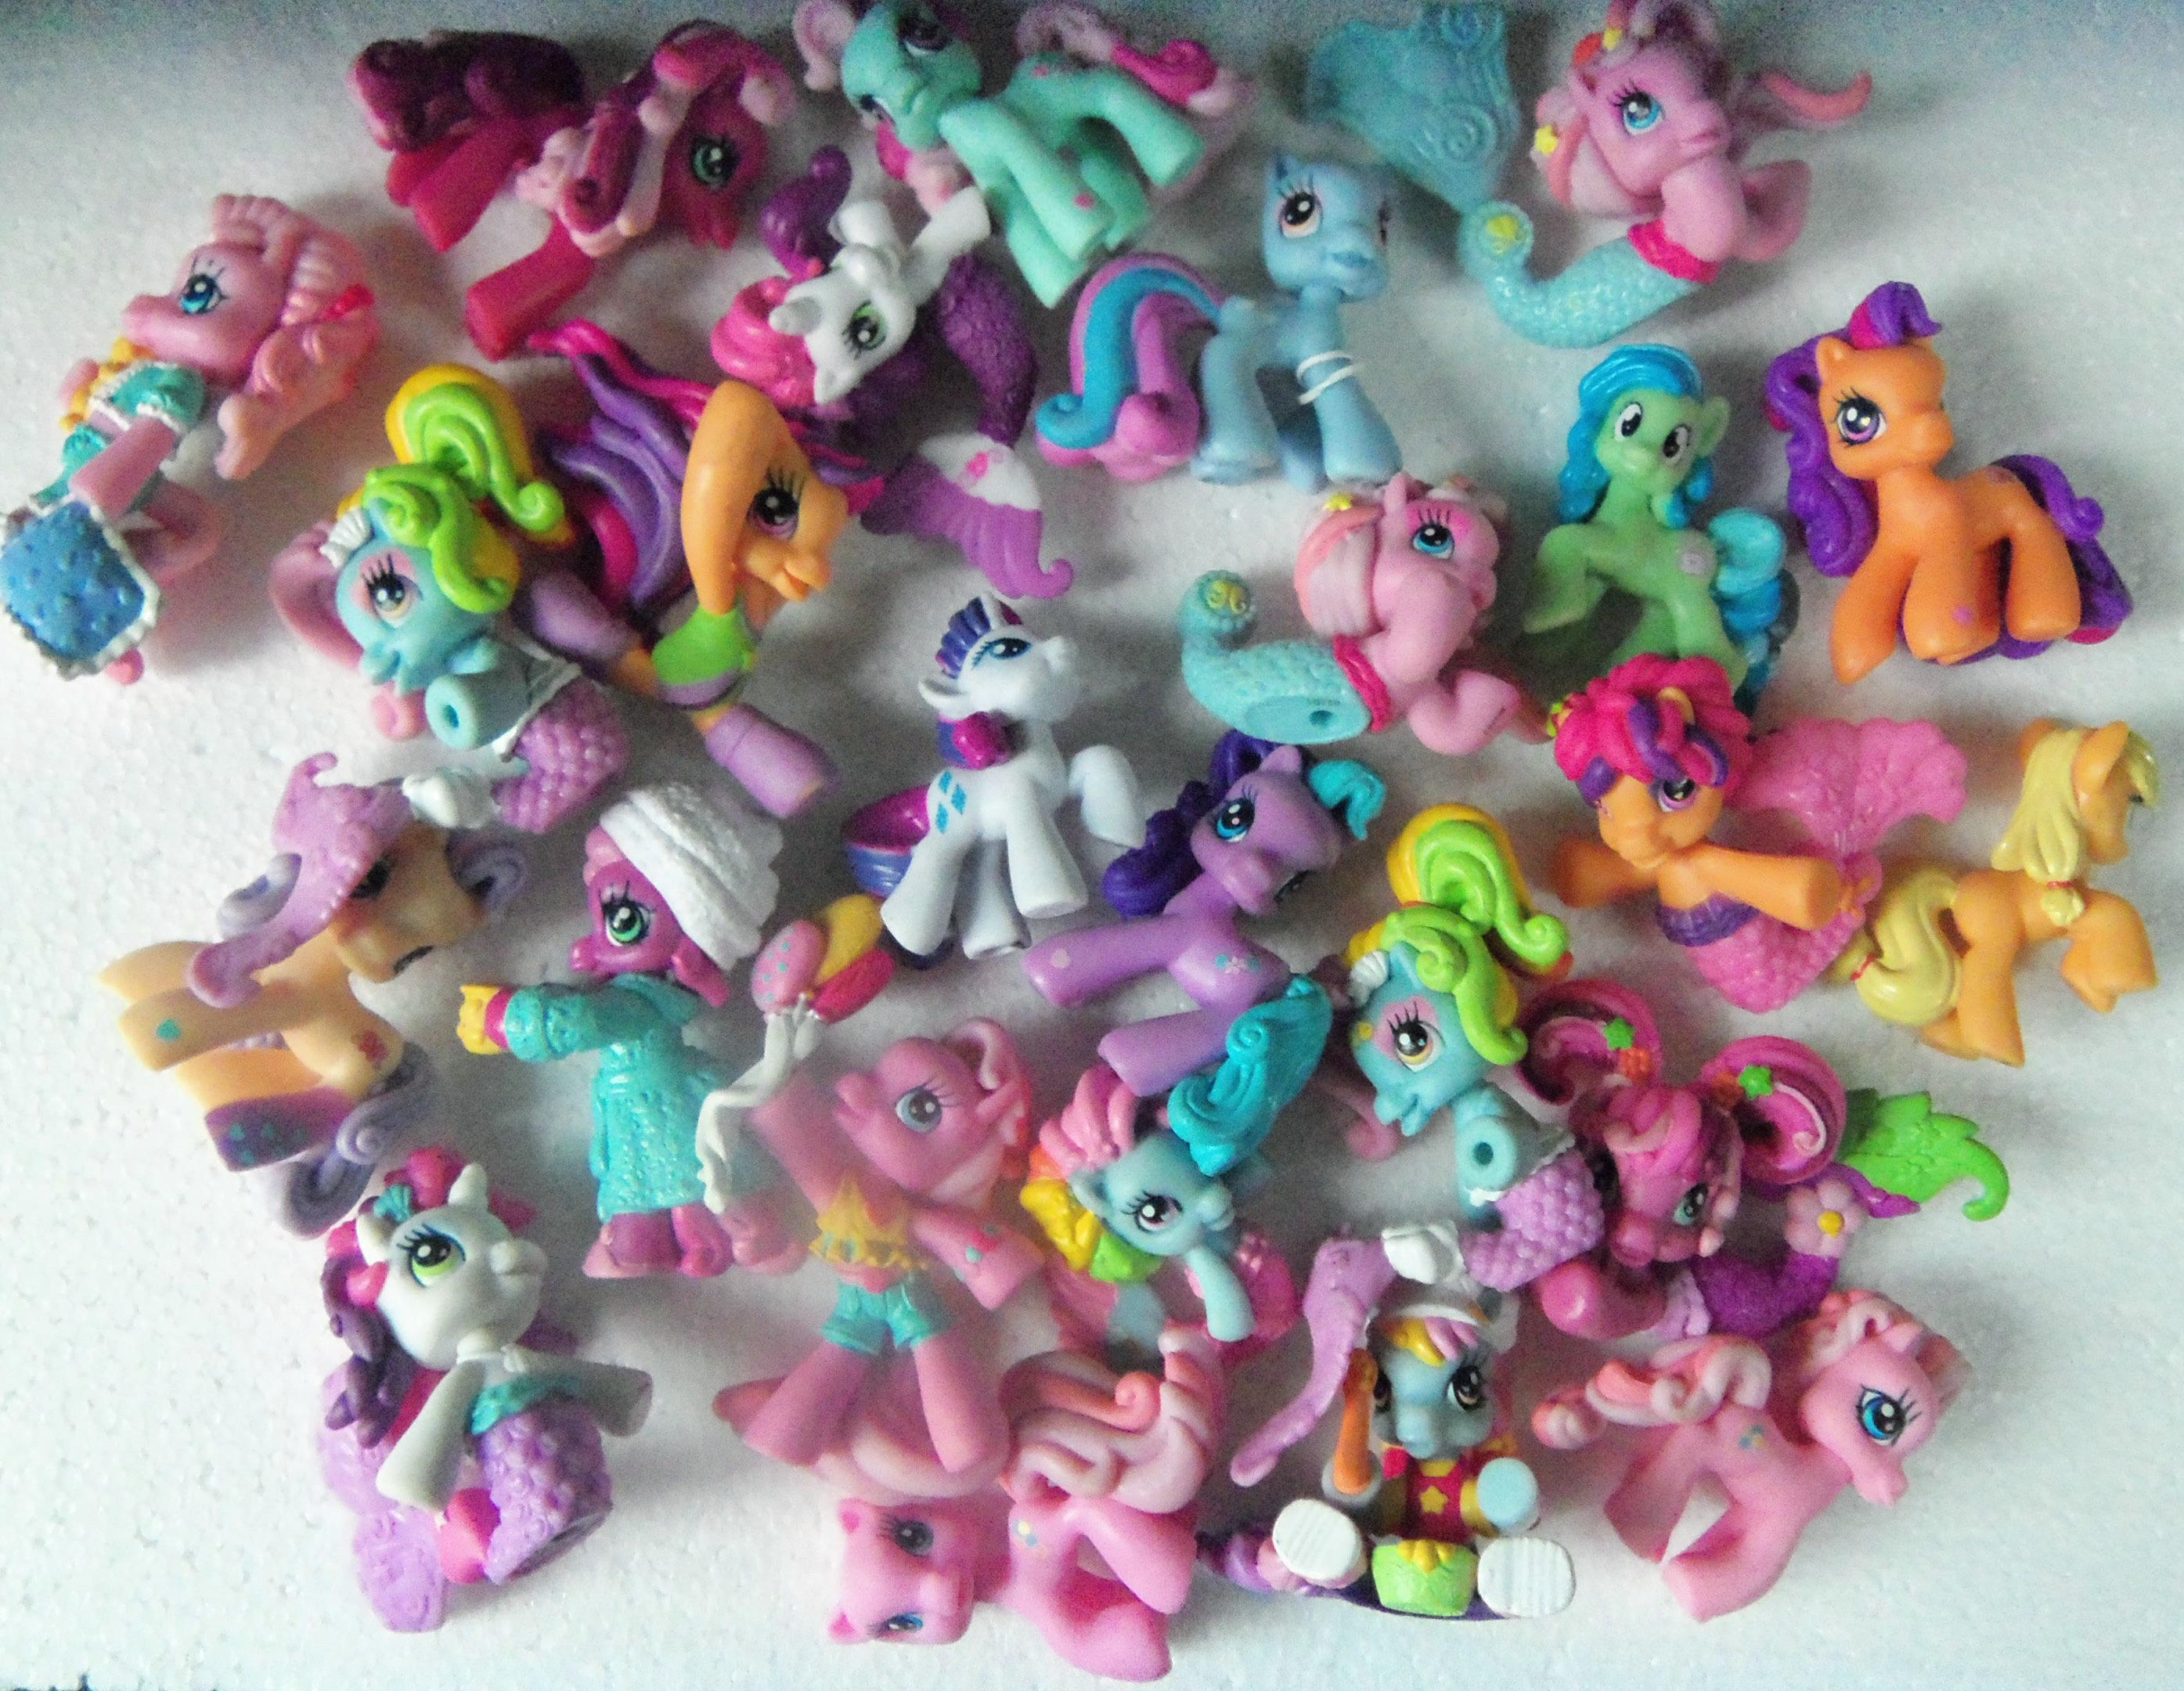 Best My Little Pony Toys And Dolls For Kids : Juguetes little pony best image loading good my